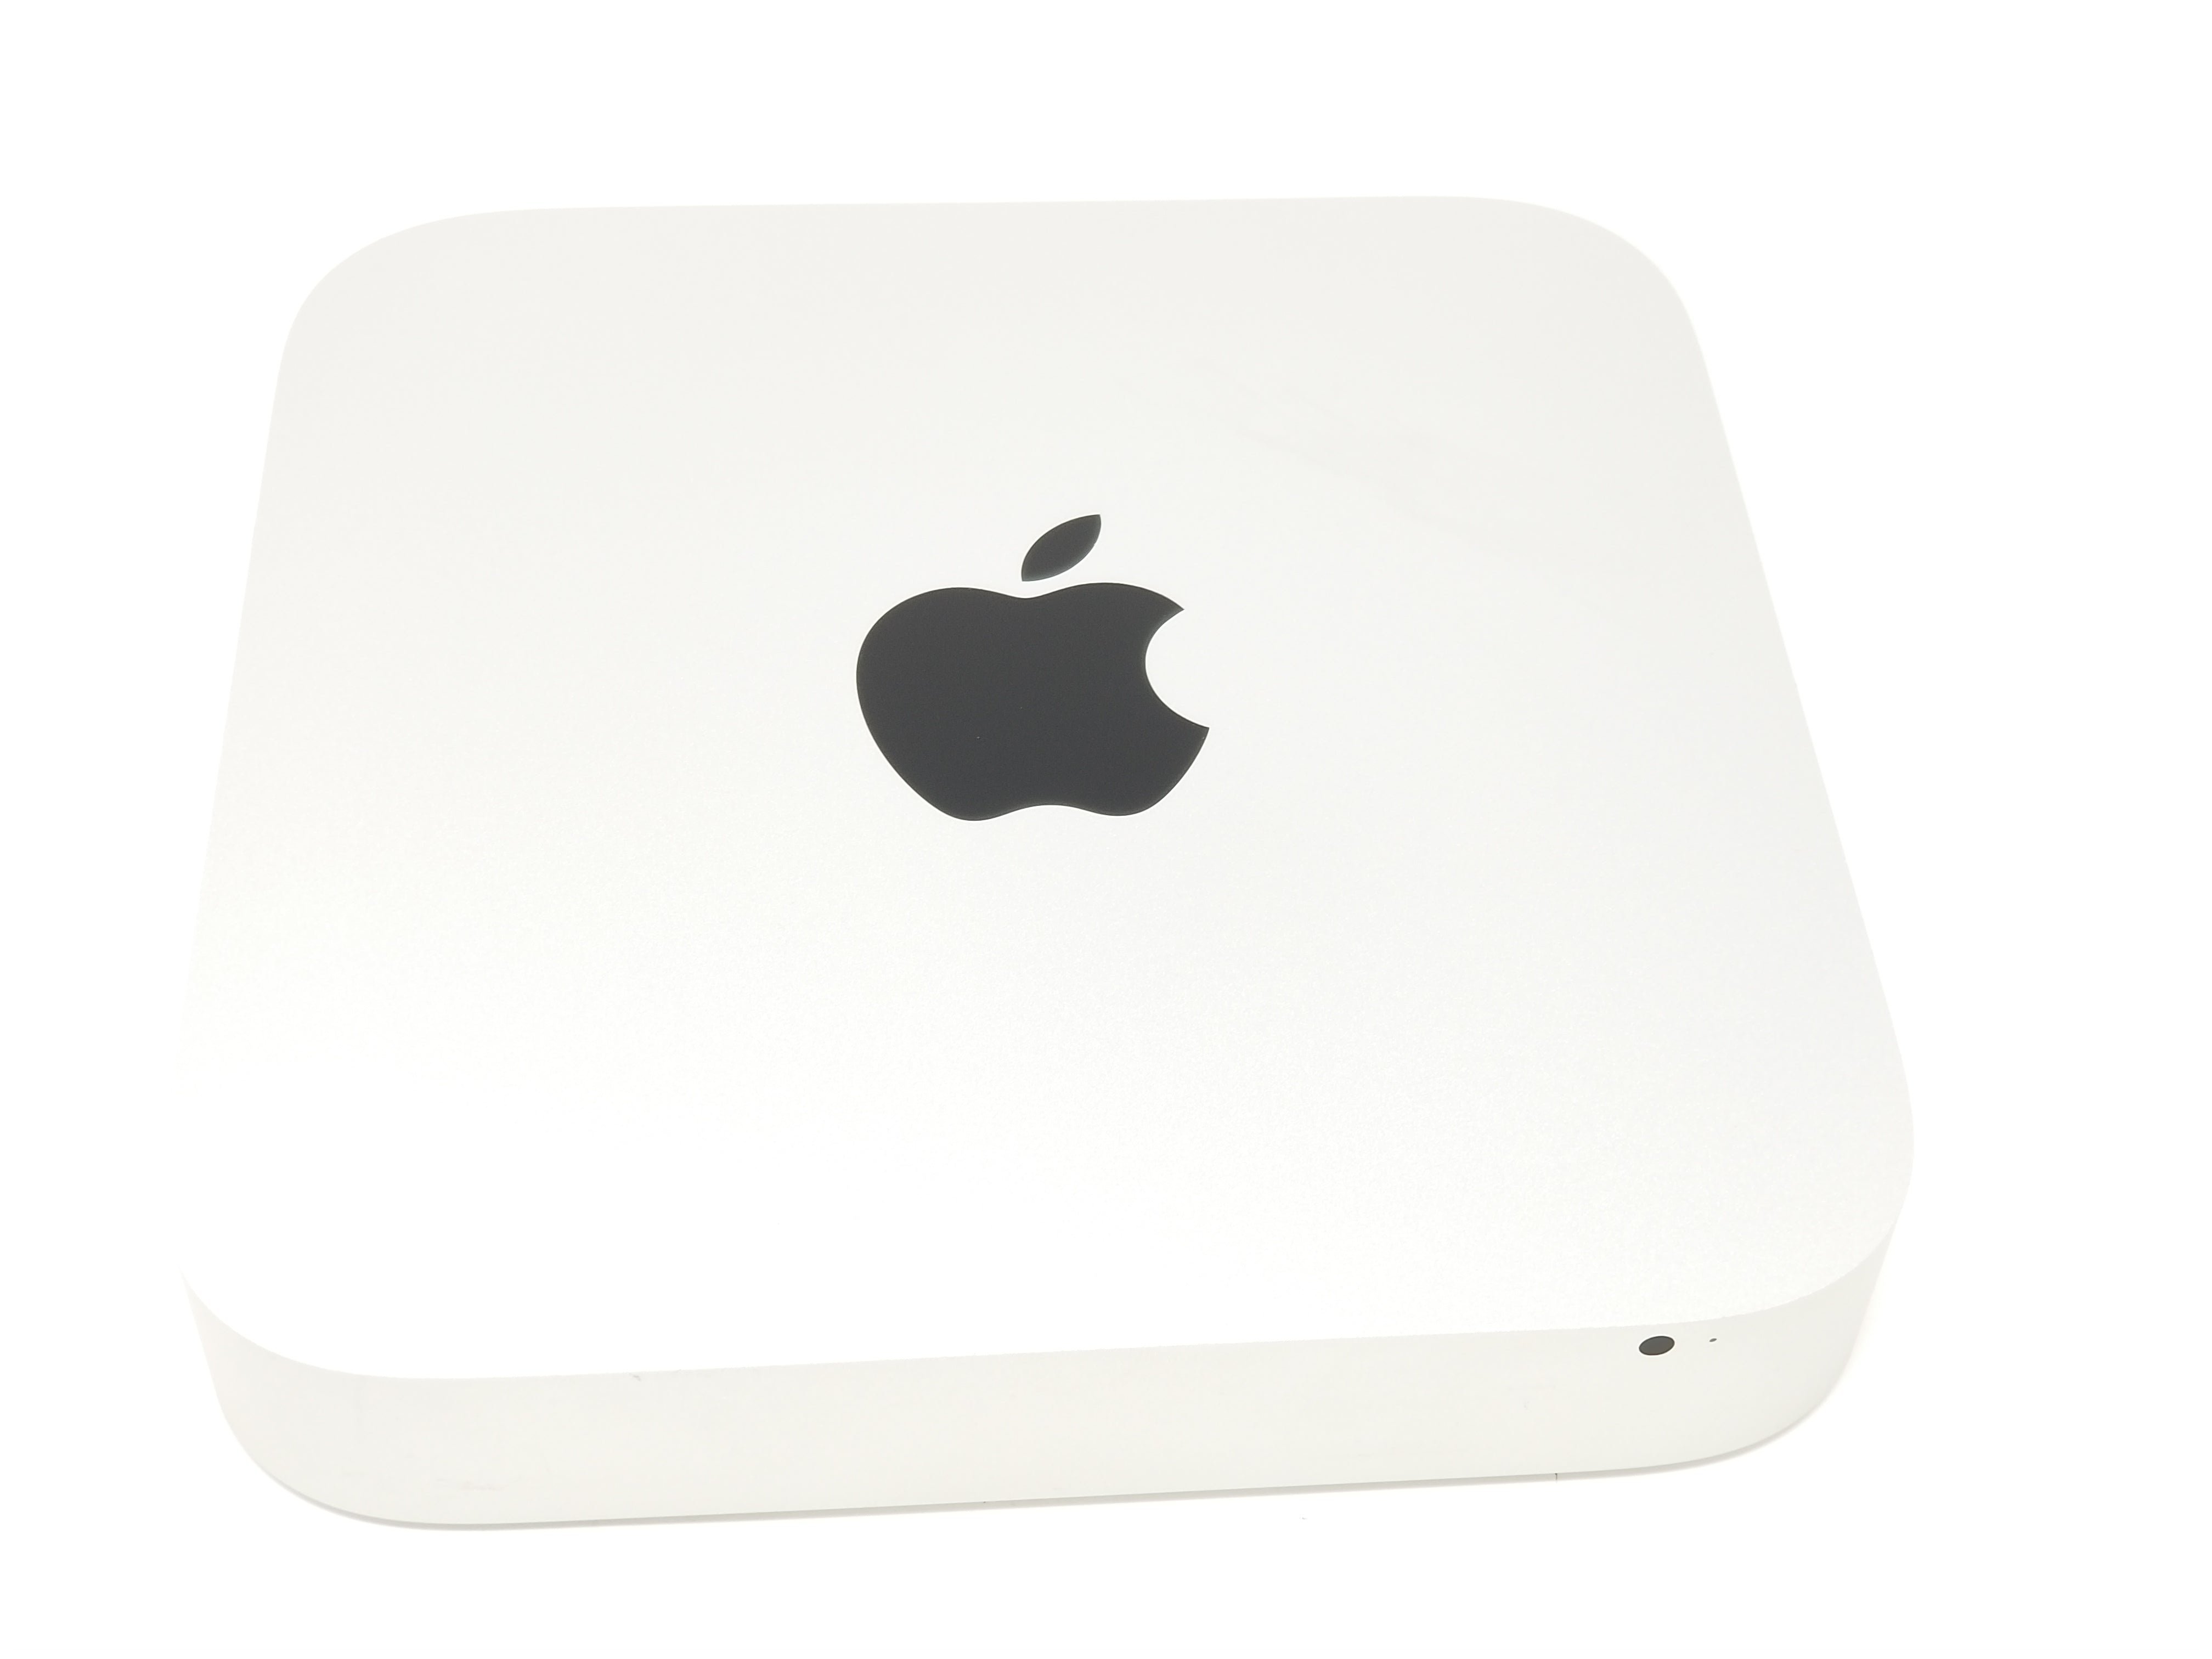 Mac Mini A1347 (Late 2014) Aluminum Housing / Casing - 810-00098-A